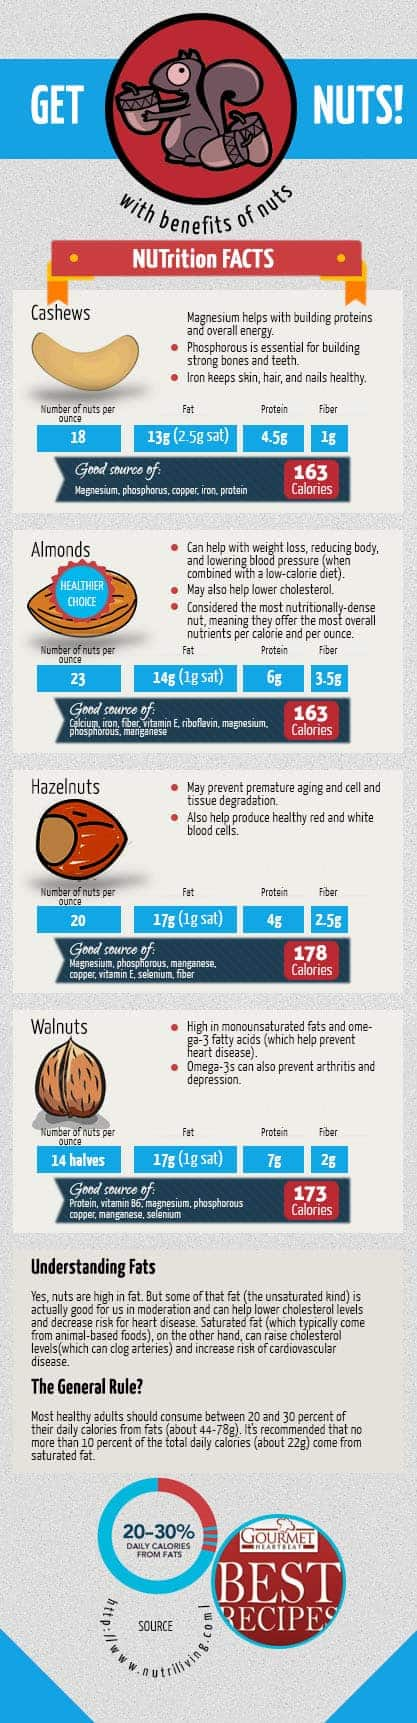 nuts nutrition facts